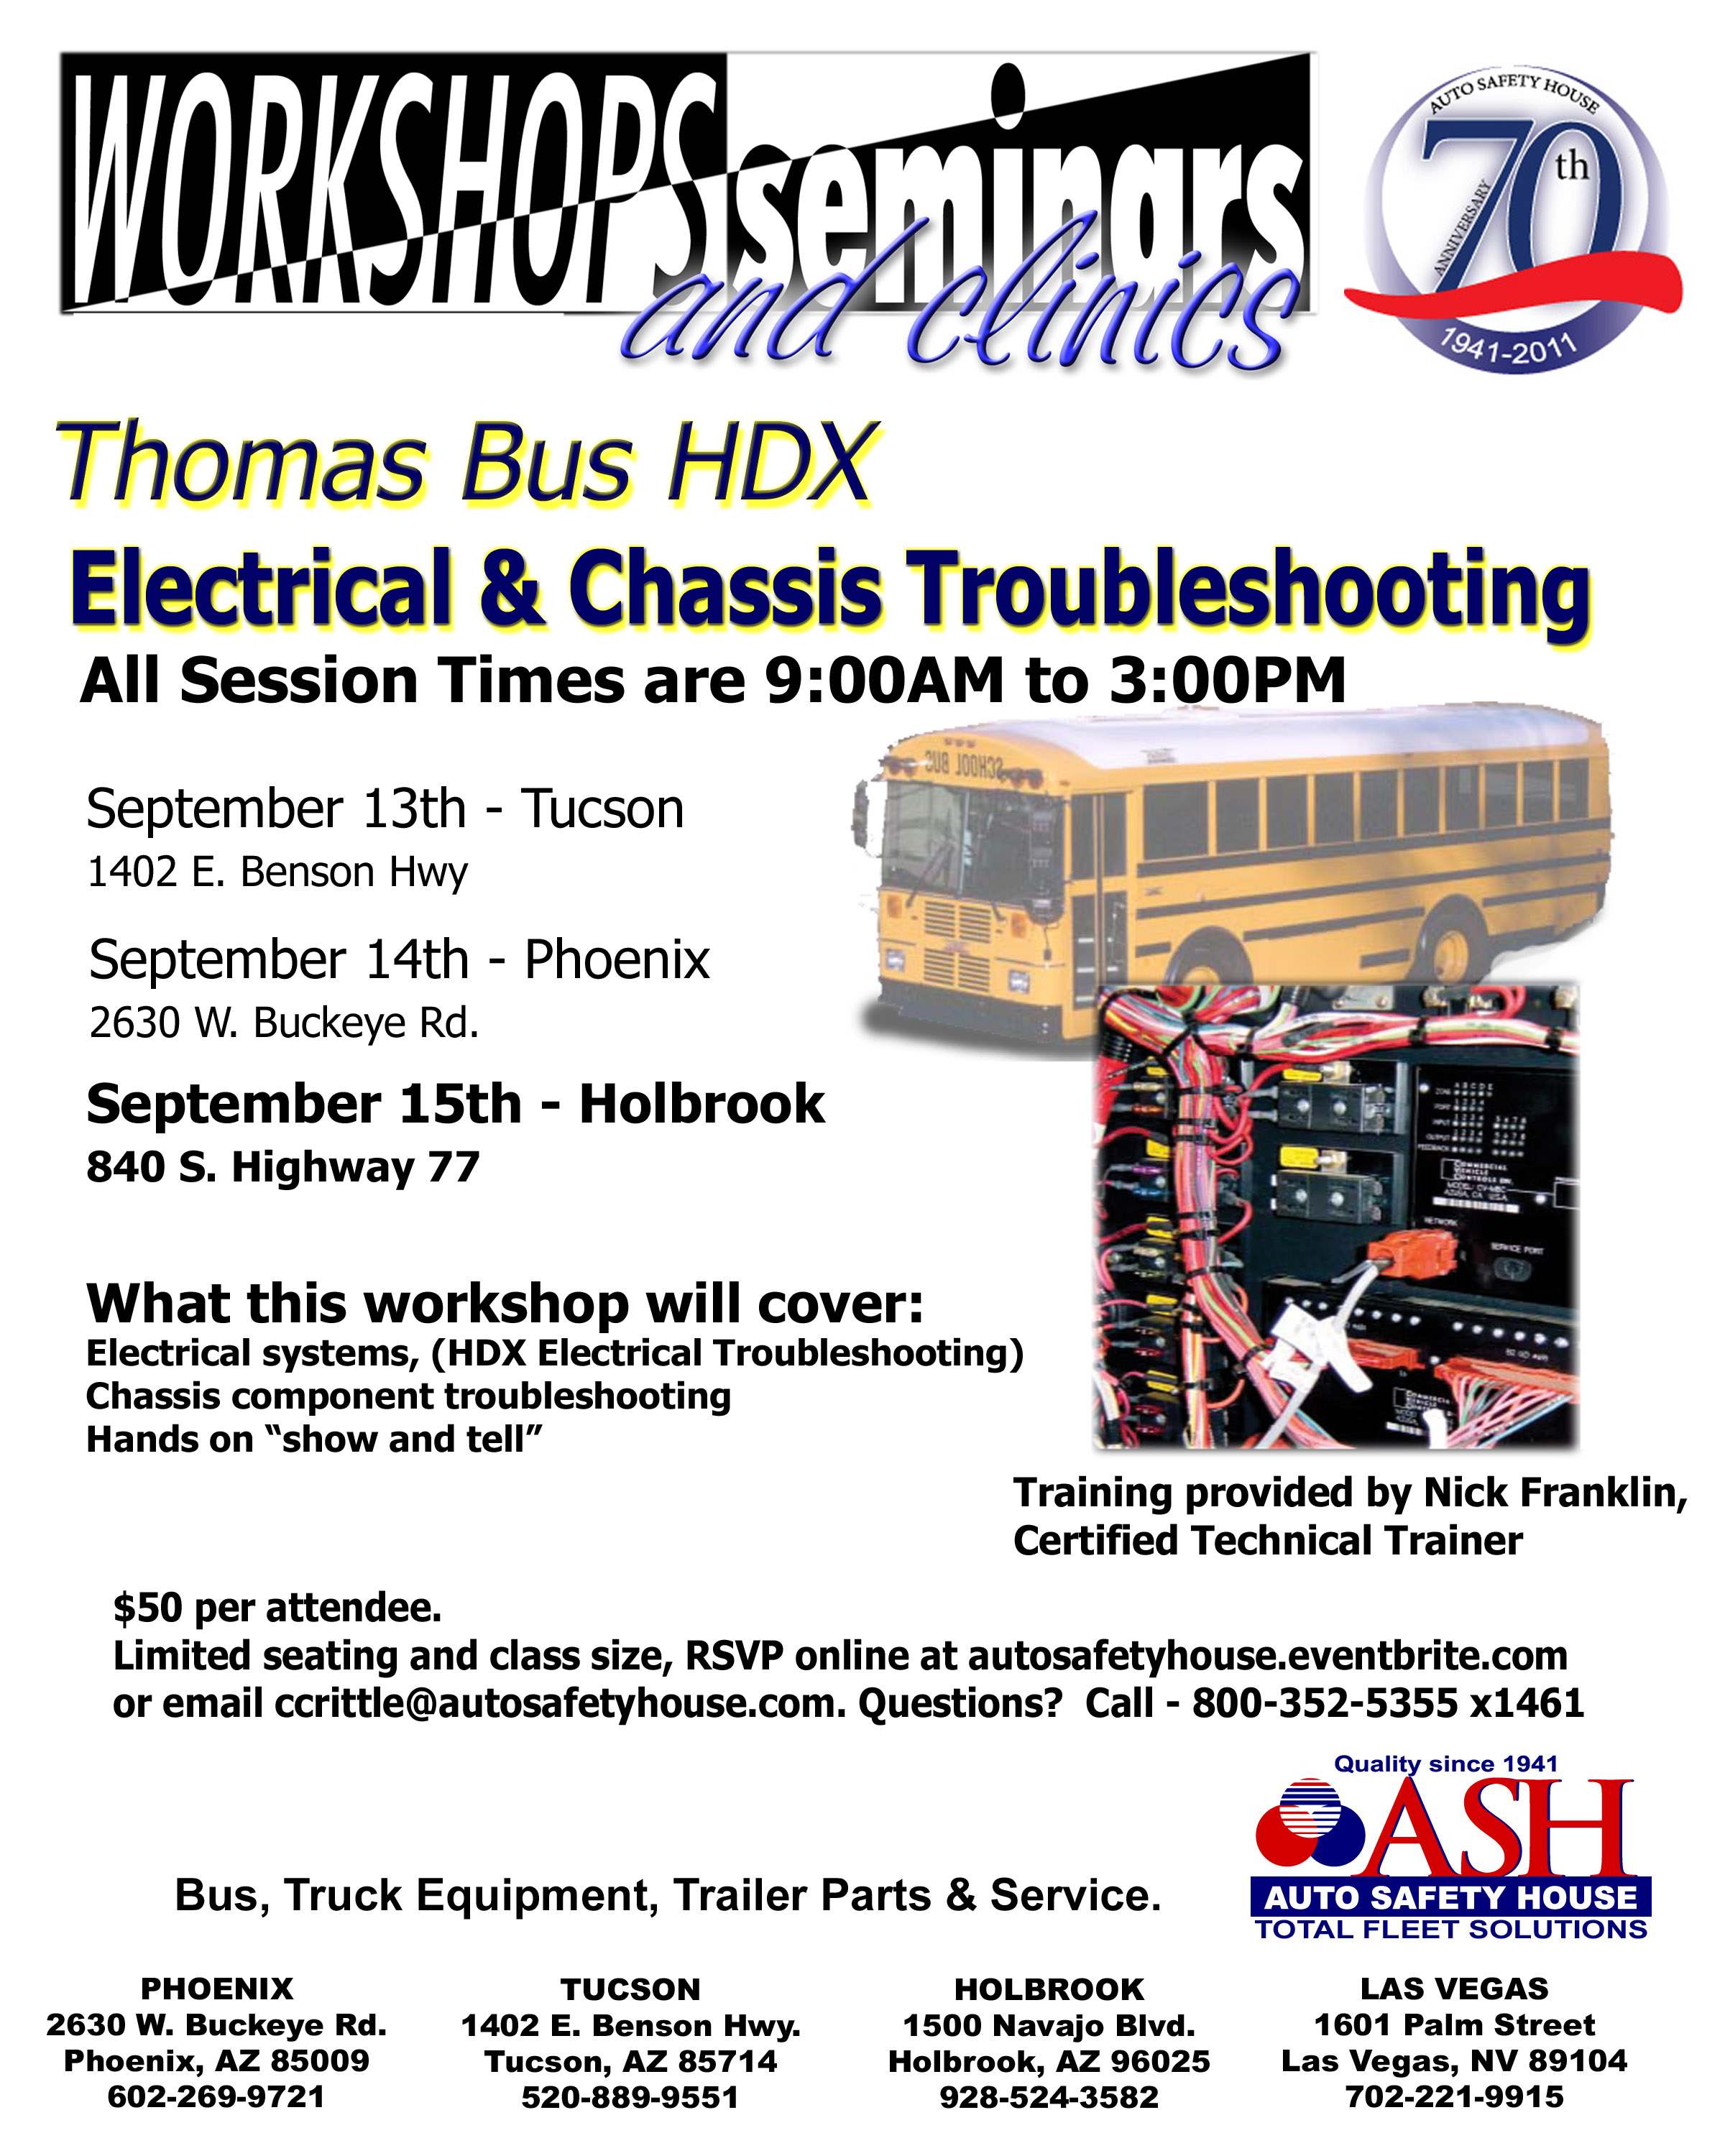 HDX Workshop Flyer